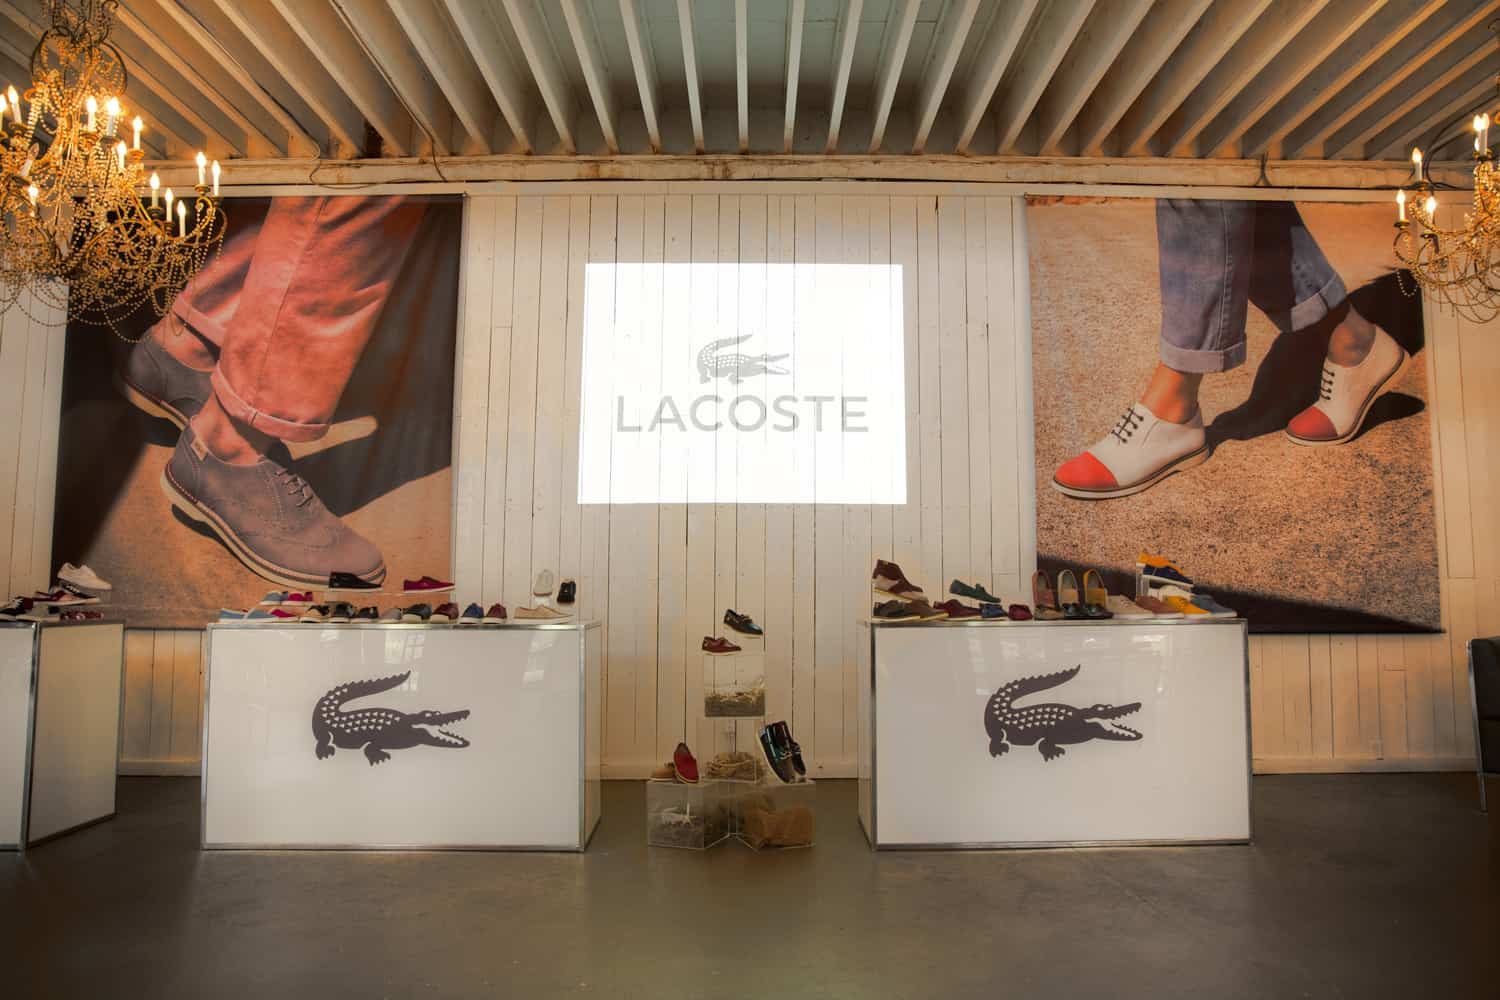 Locoste product launch at the Berkeley Field House event venue with two tables with locoste logo and projection on the wall